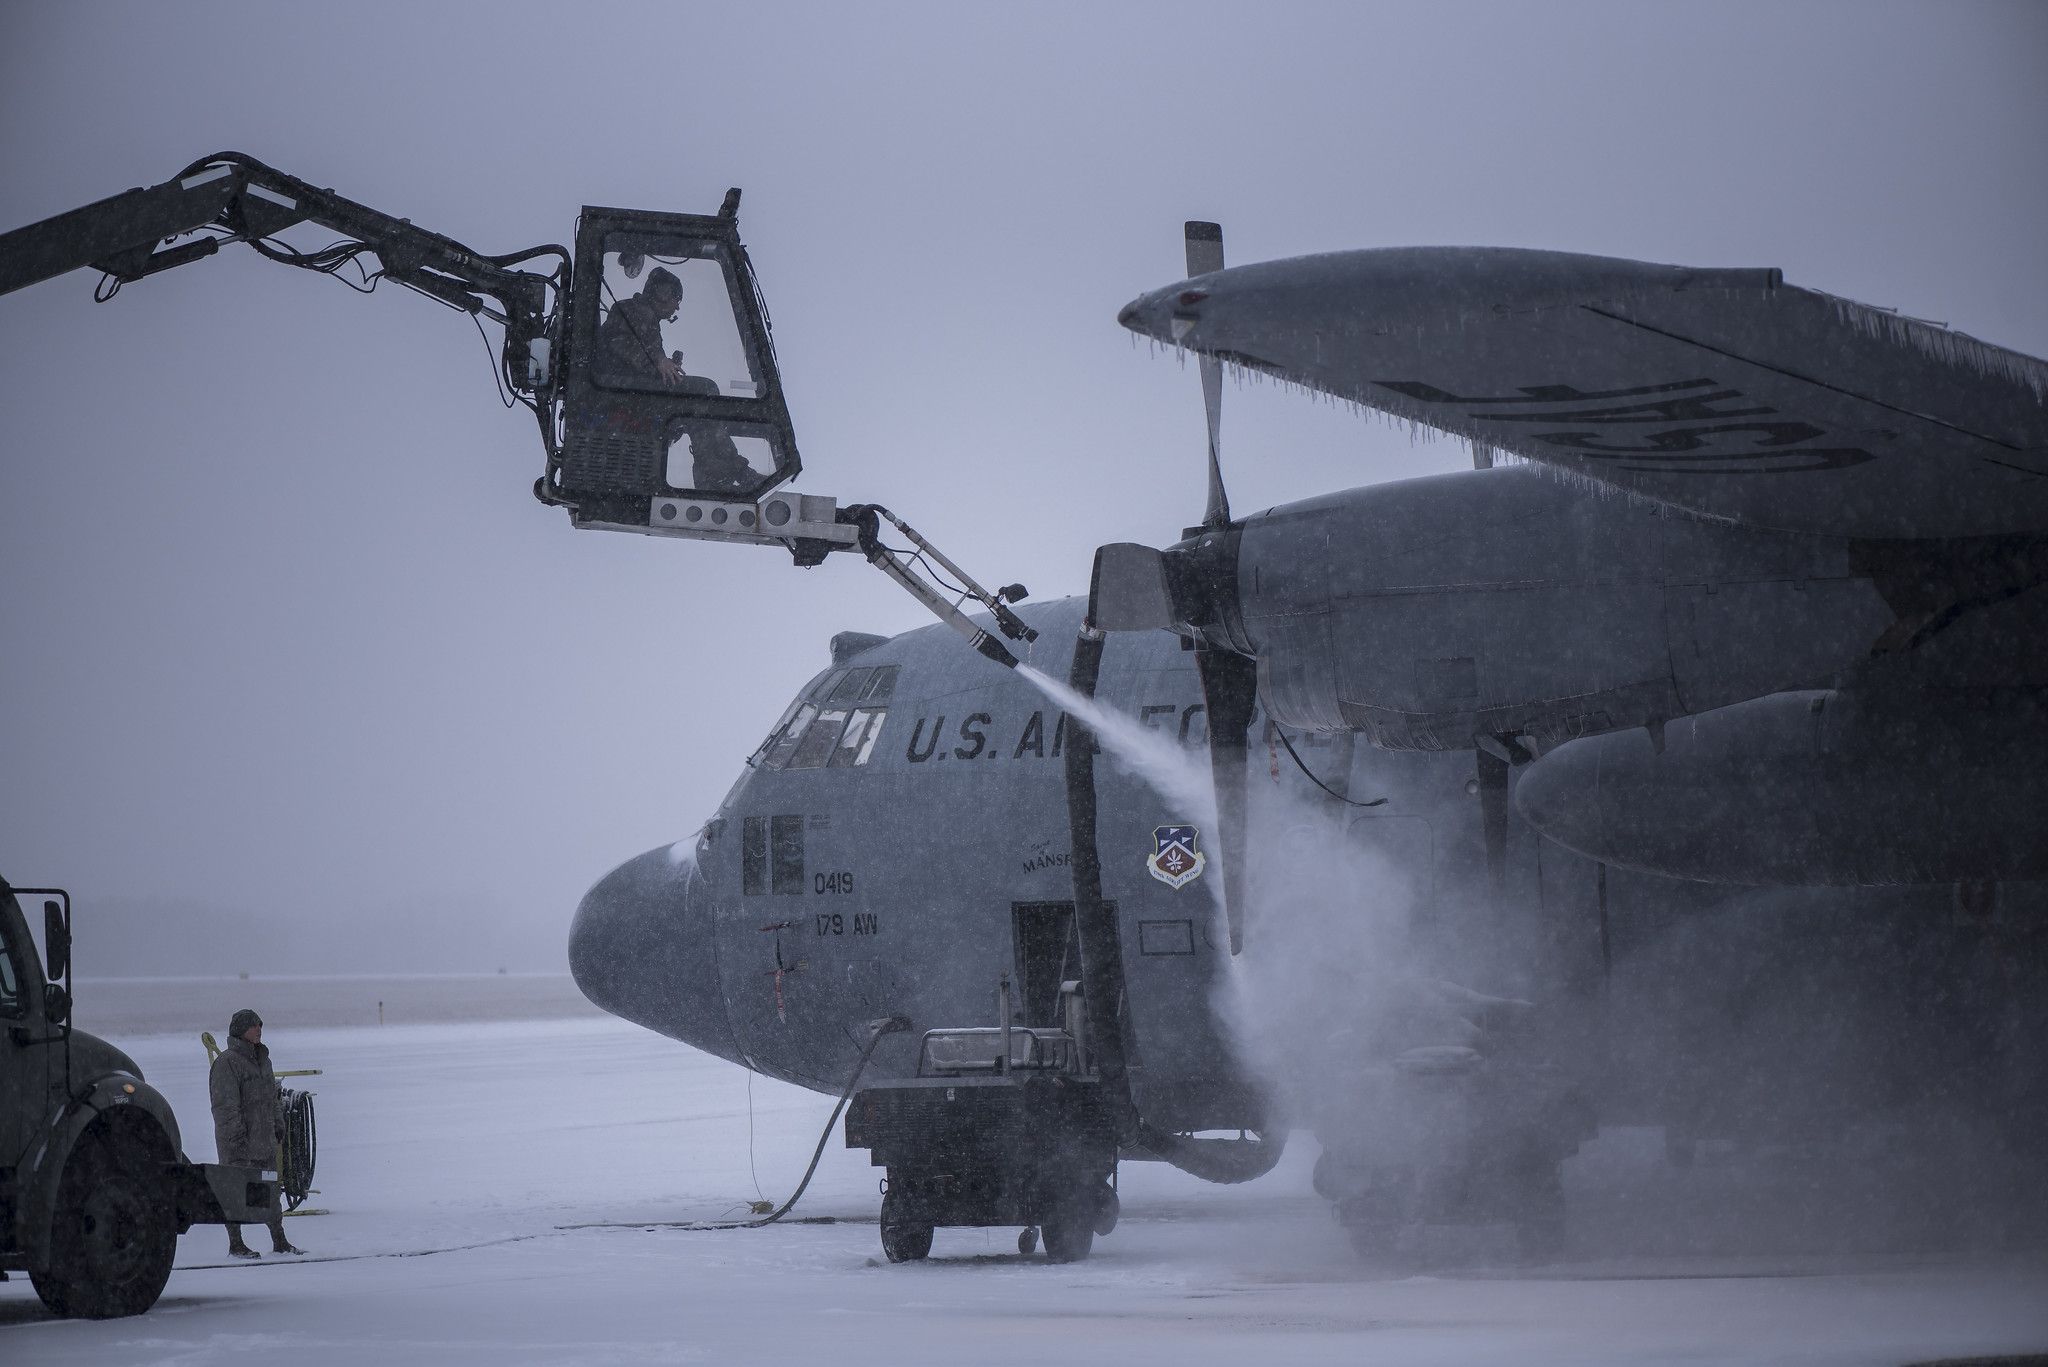 Airmen work on a C-130H Hercules, spraying it with deicing fluid during a snowstorm, Feb. 07, 2020, at the 179th Airlift Wing, Mansfield, Ohio. (Tech. Sgt. Joe Harwood/Ohio Air National Guard)